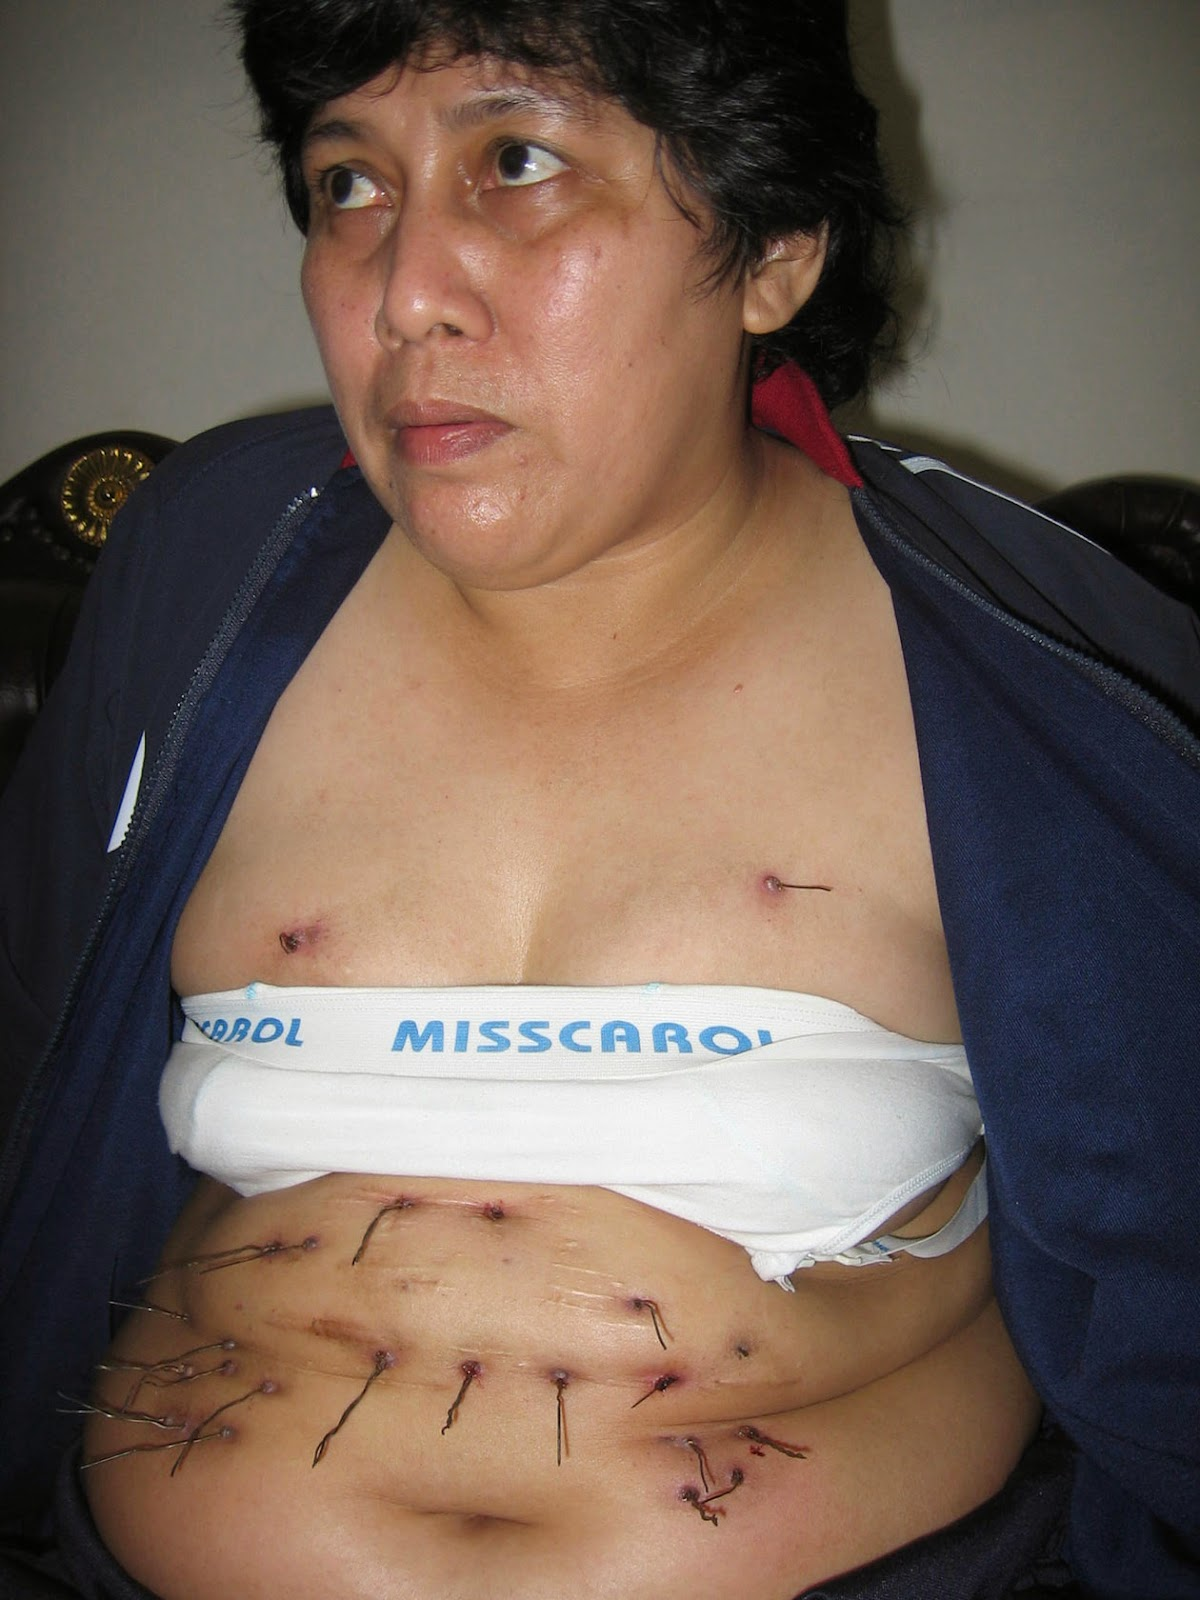 Noorsyaida with metal wires grow in her stomach